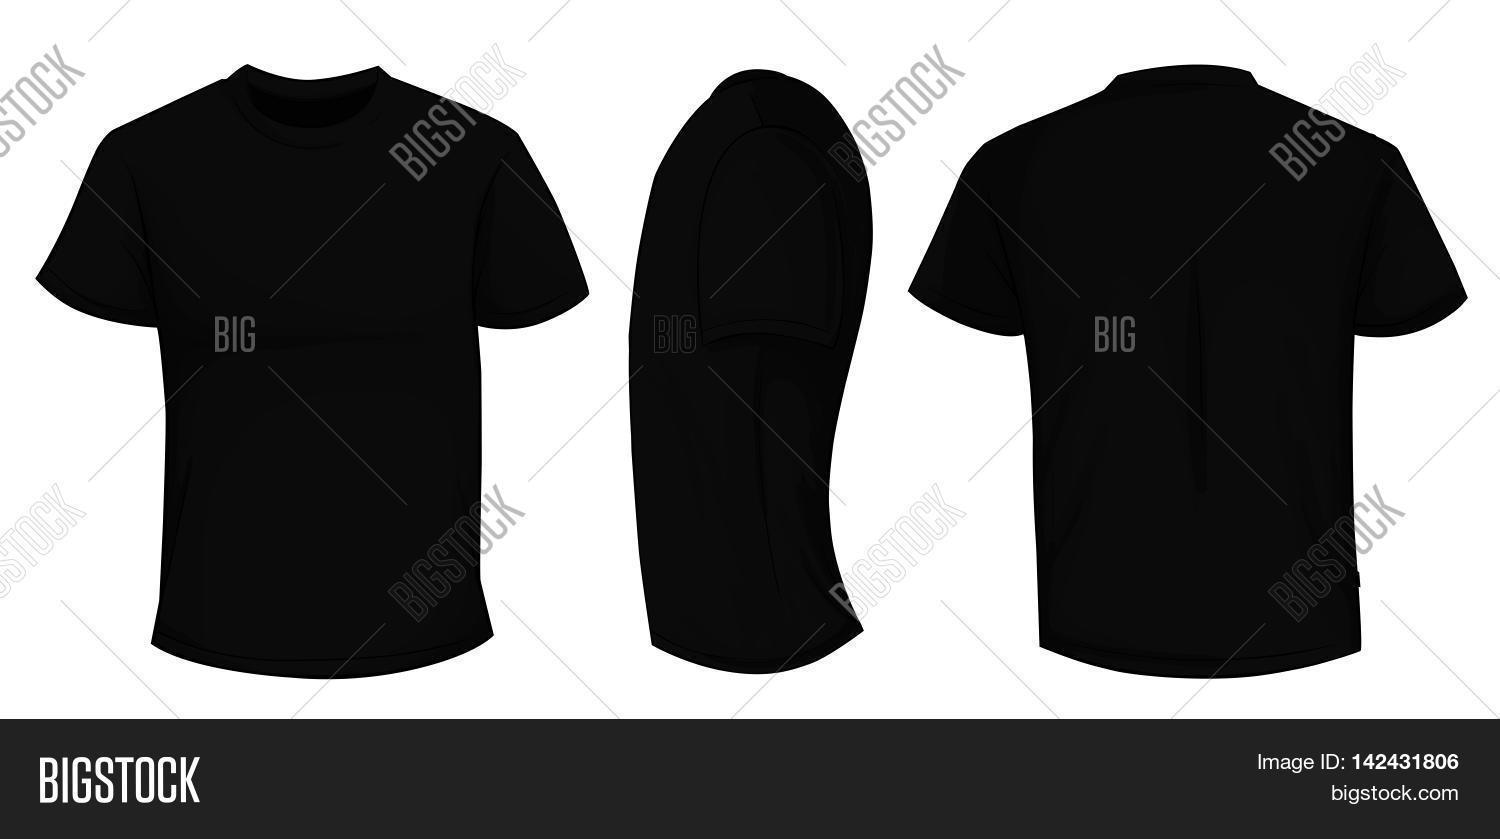 Blank black t shirt front and back -  Front And Back Template Vector Illustration Of Blank Black Men T Shirt Download